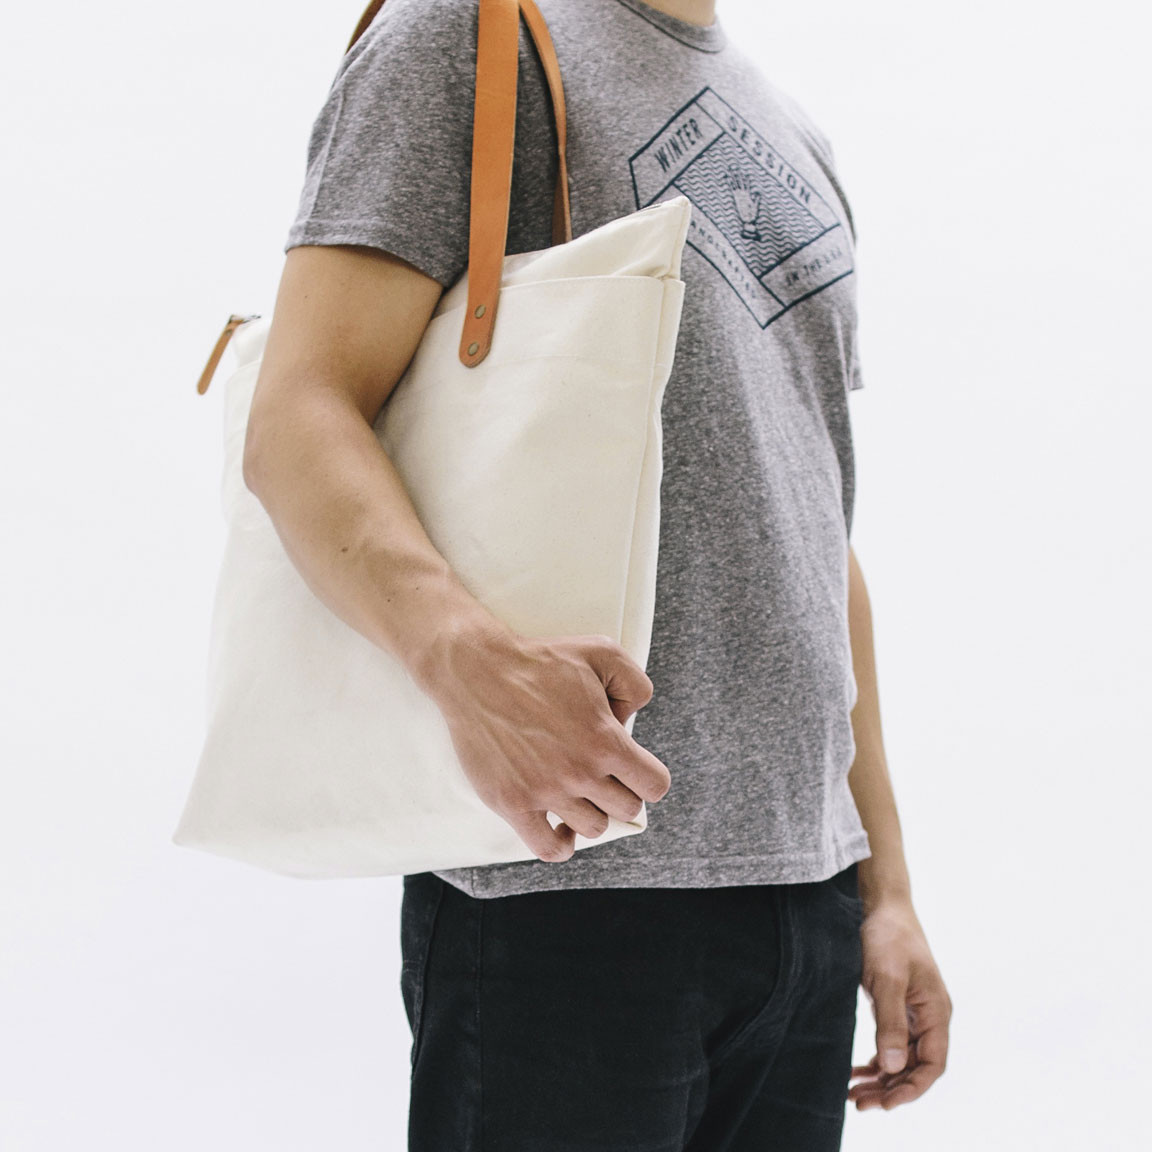 Winter Session ジップトートバック (ZIP-TOP TOTE)_d0334060_13581453.jpg